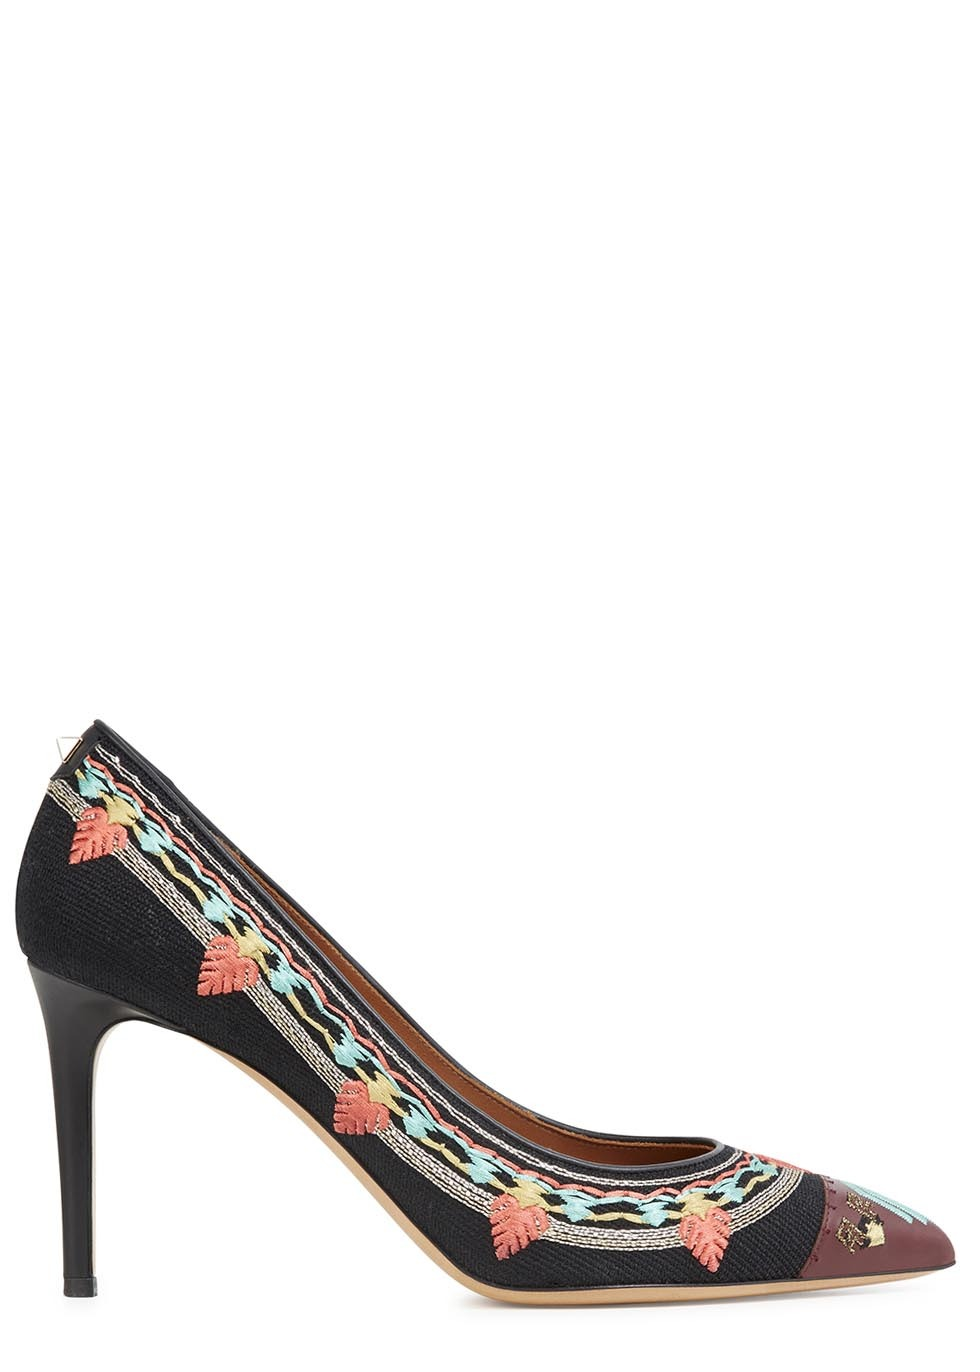 Embroidered Canvas Pumps - occasions: occasion, creative work; predominant colour: multicoloured; material: leather; embellishment: embroidered; heel: stiletto; toe: pointed toe; style: courts; finish: plain; pattern: patterned/print; heel height: very high; season: s/s 2014; multicoloured: multicoloured